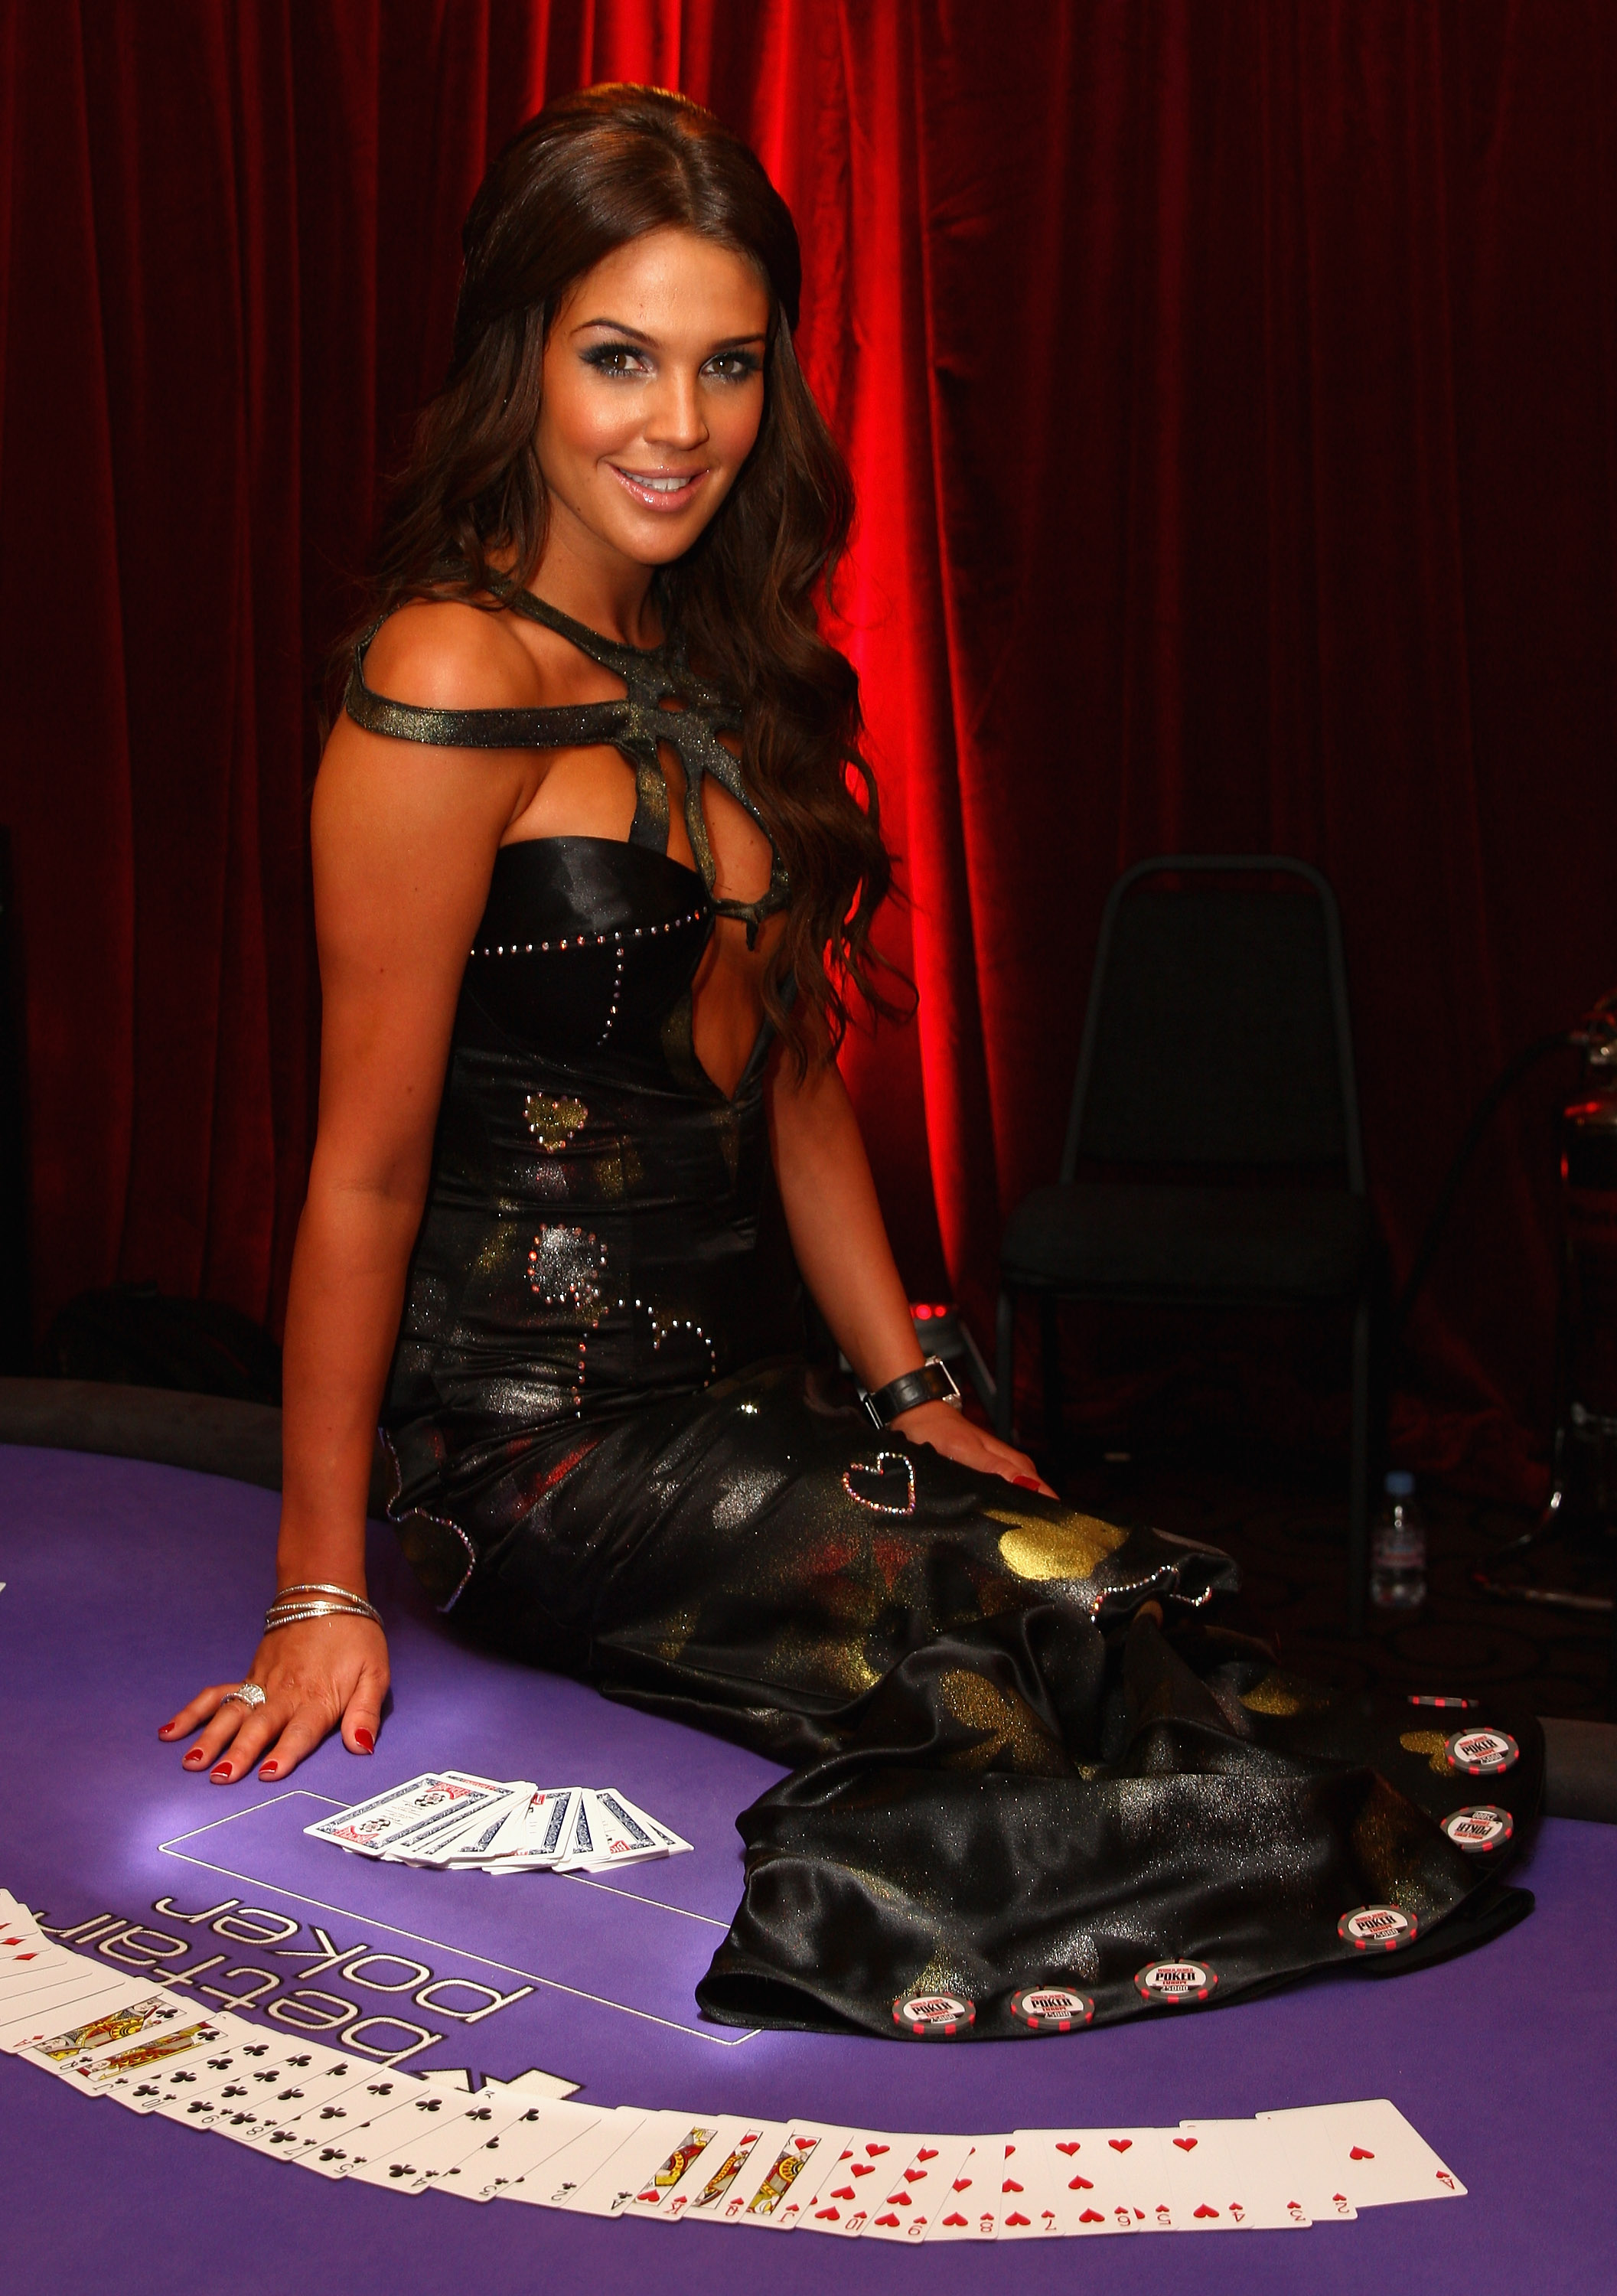 70284_Celebutopia-Danielle_Lloyd_launches_the_World_Series_of_Poker_event-01_122_561lo.jpg